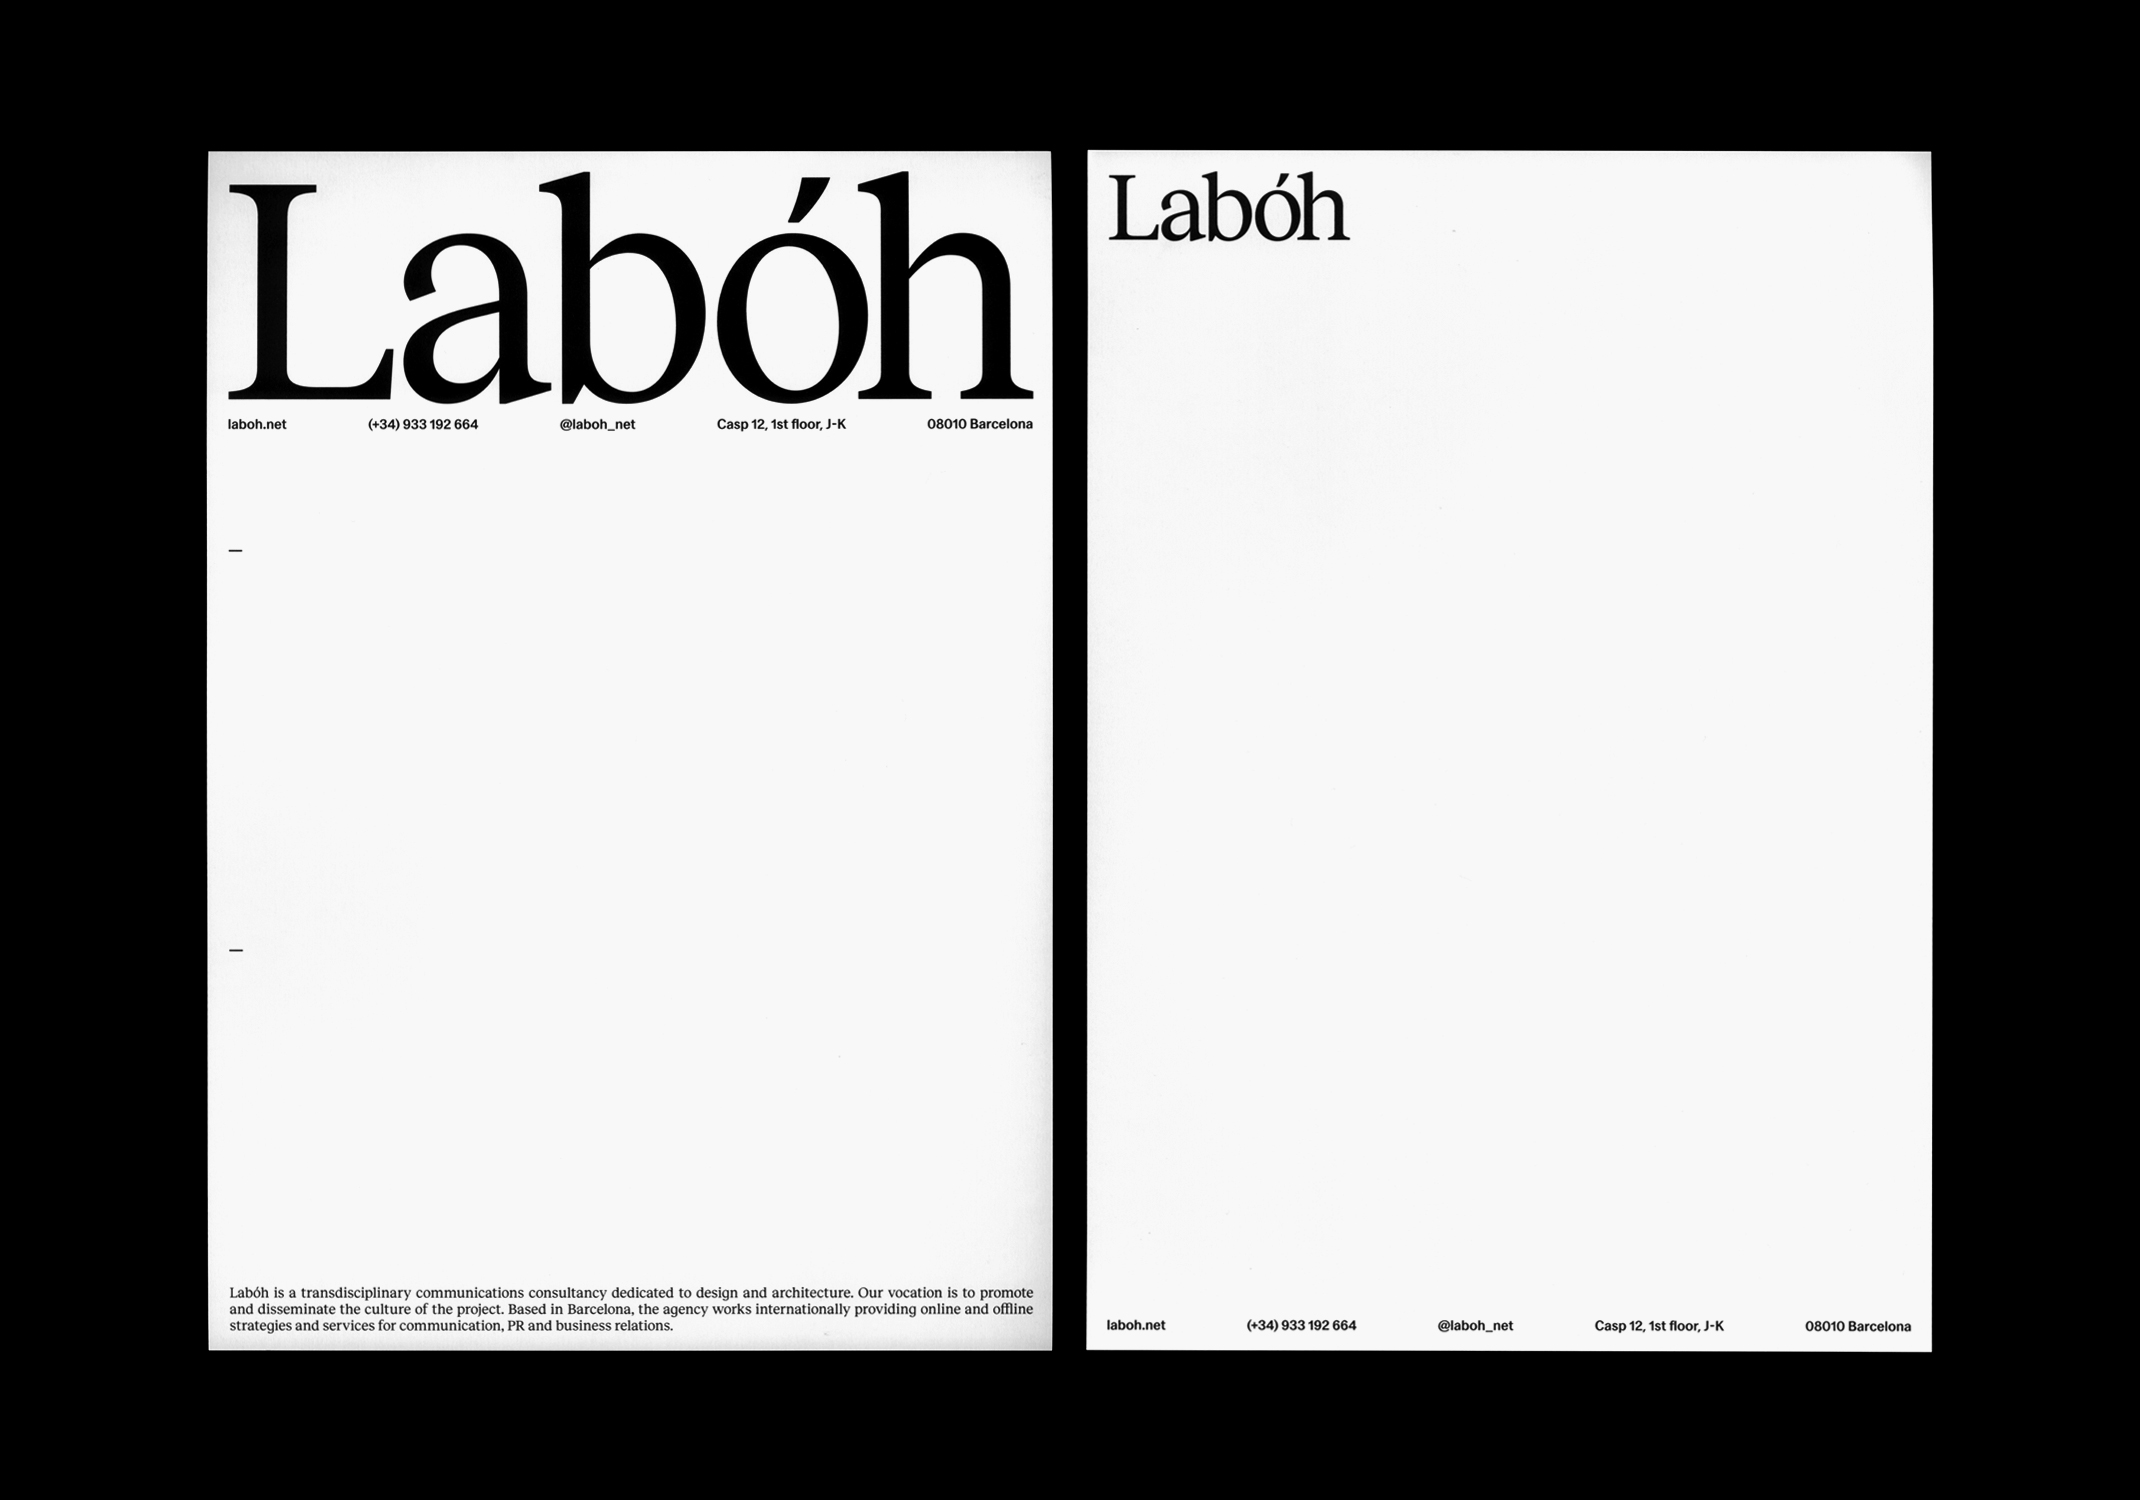 branding graphic design laboh stationery clase bcn – Clase bcn